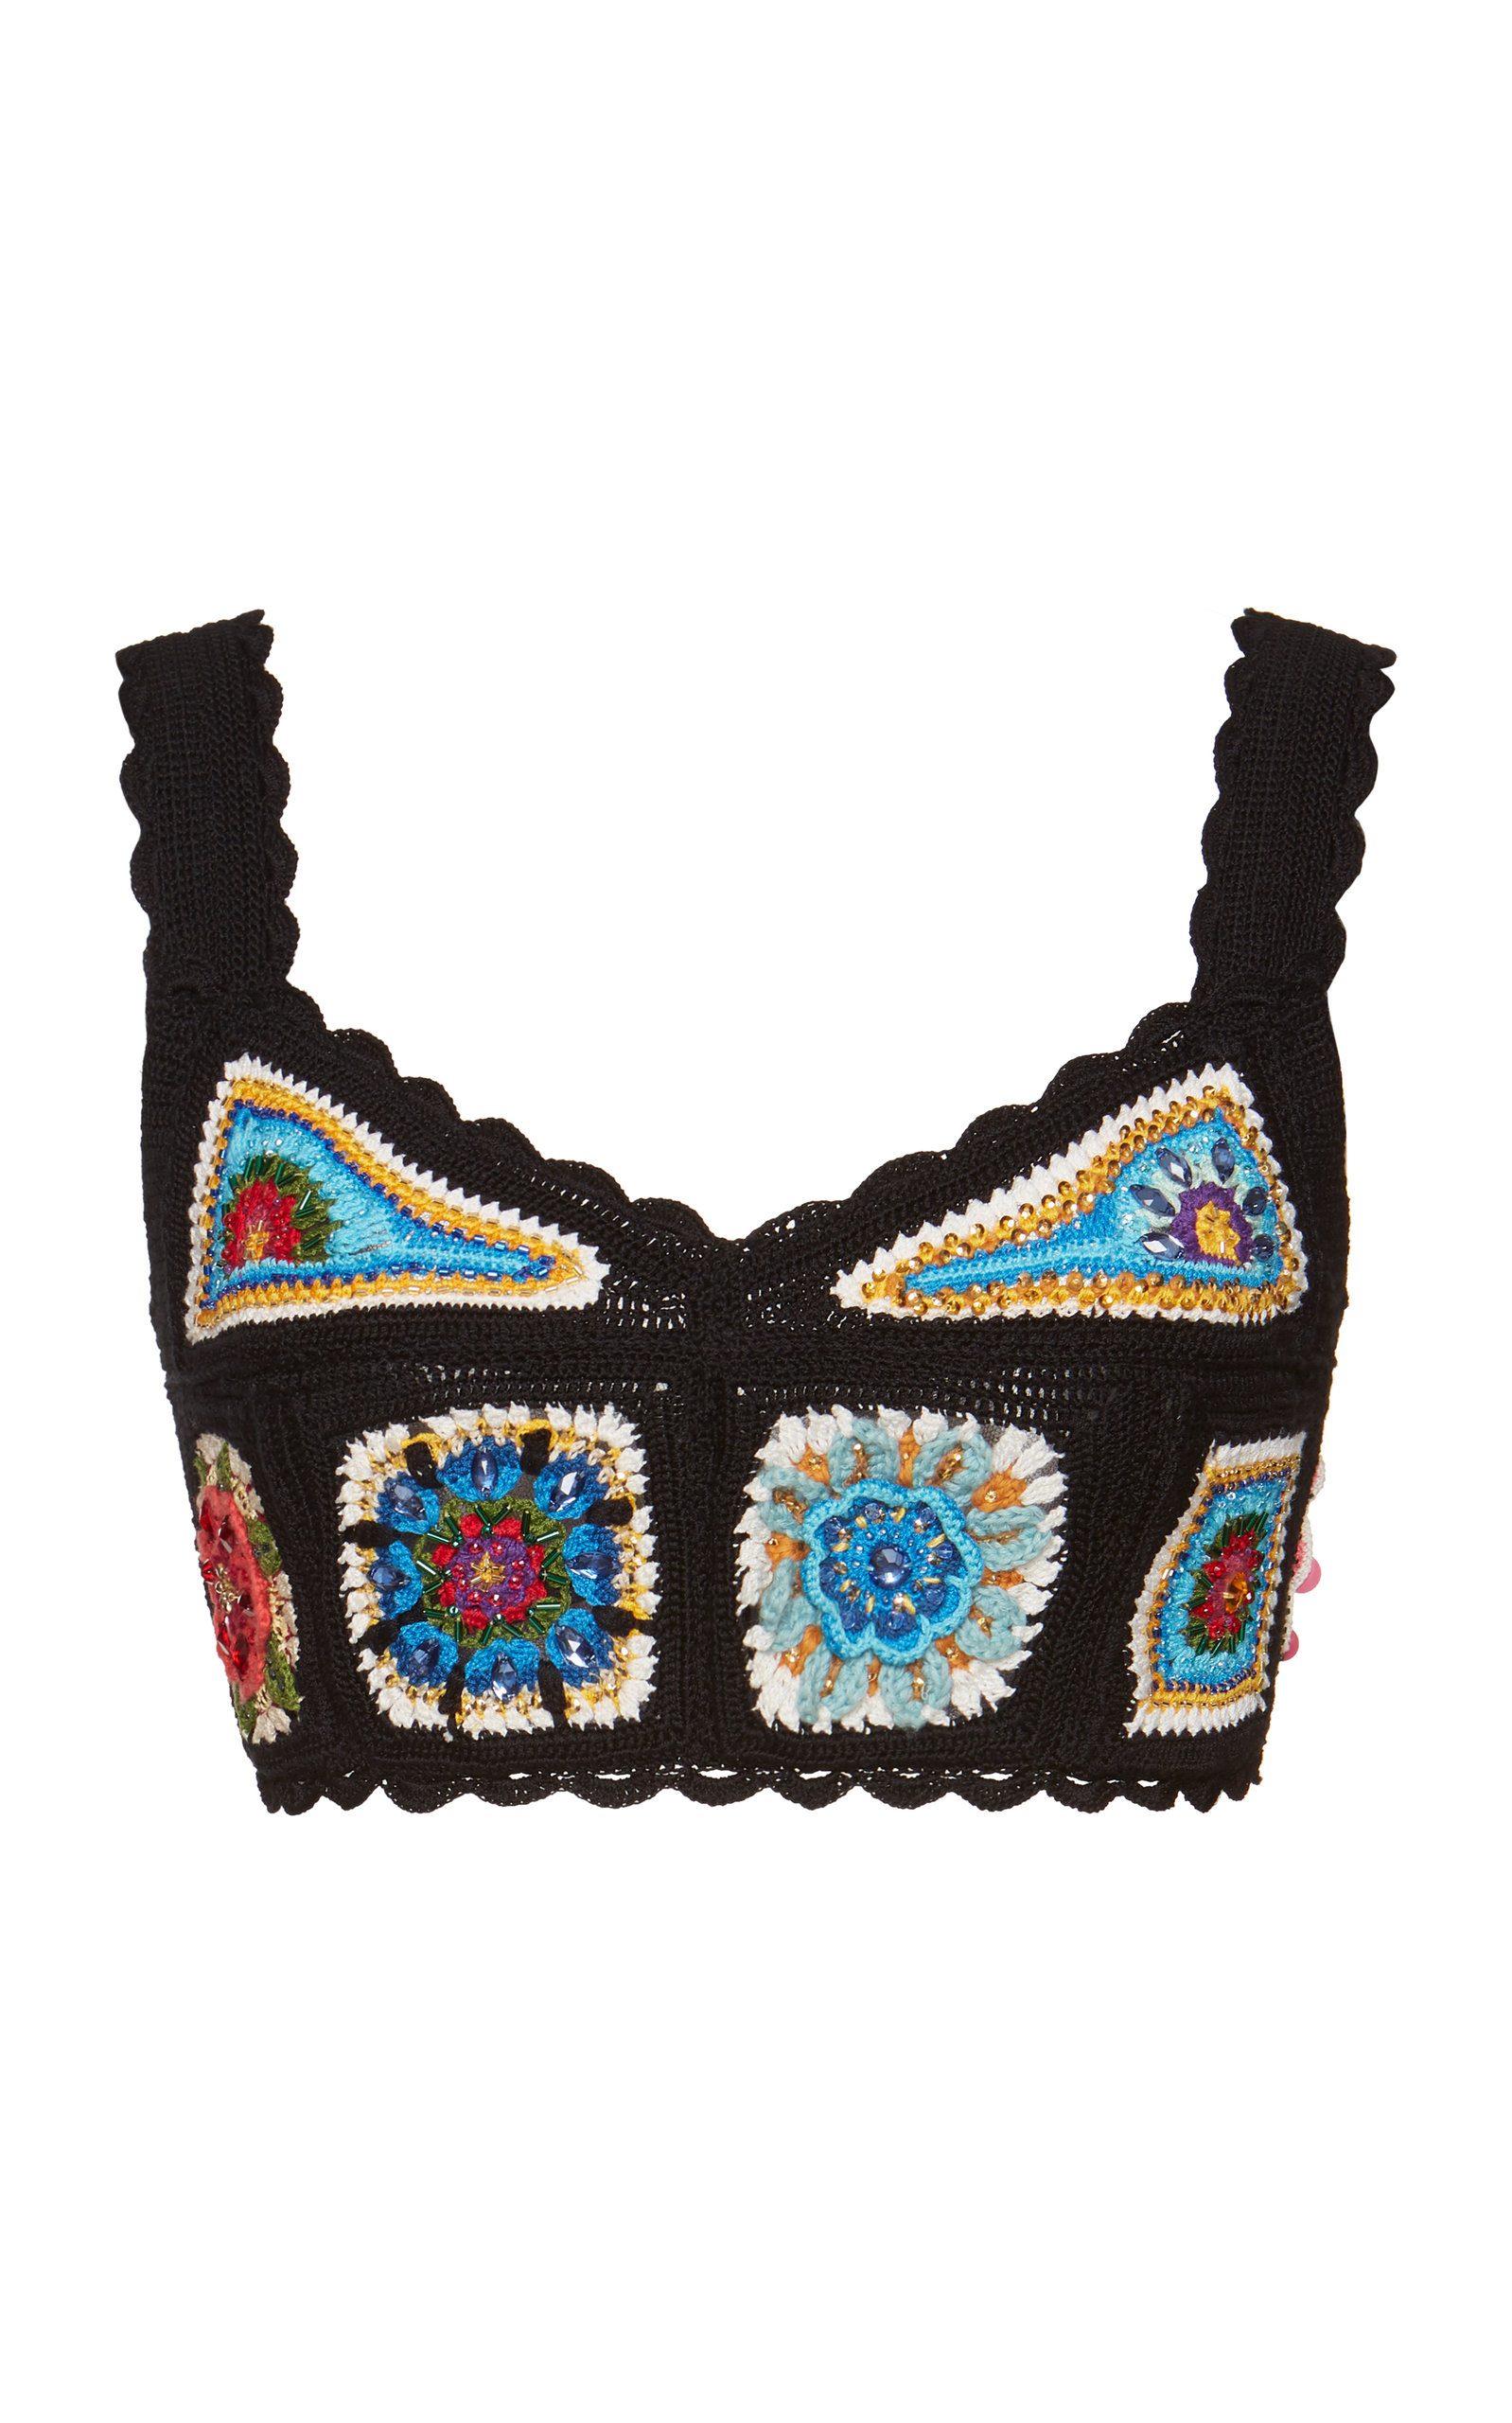 75f07bf5840c3 Dolce   GabbanaHand-Crocheted Cropped Top. CLOSE. Loading